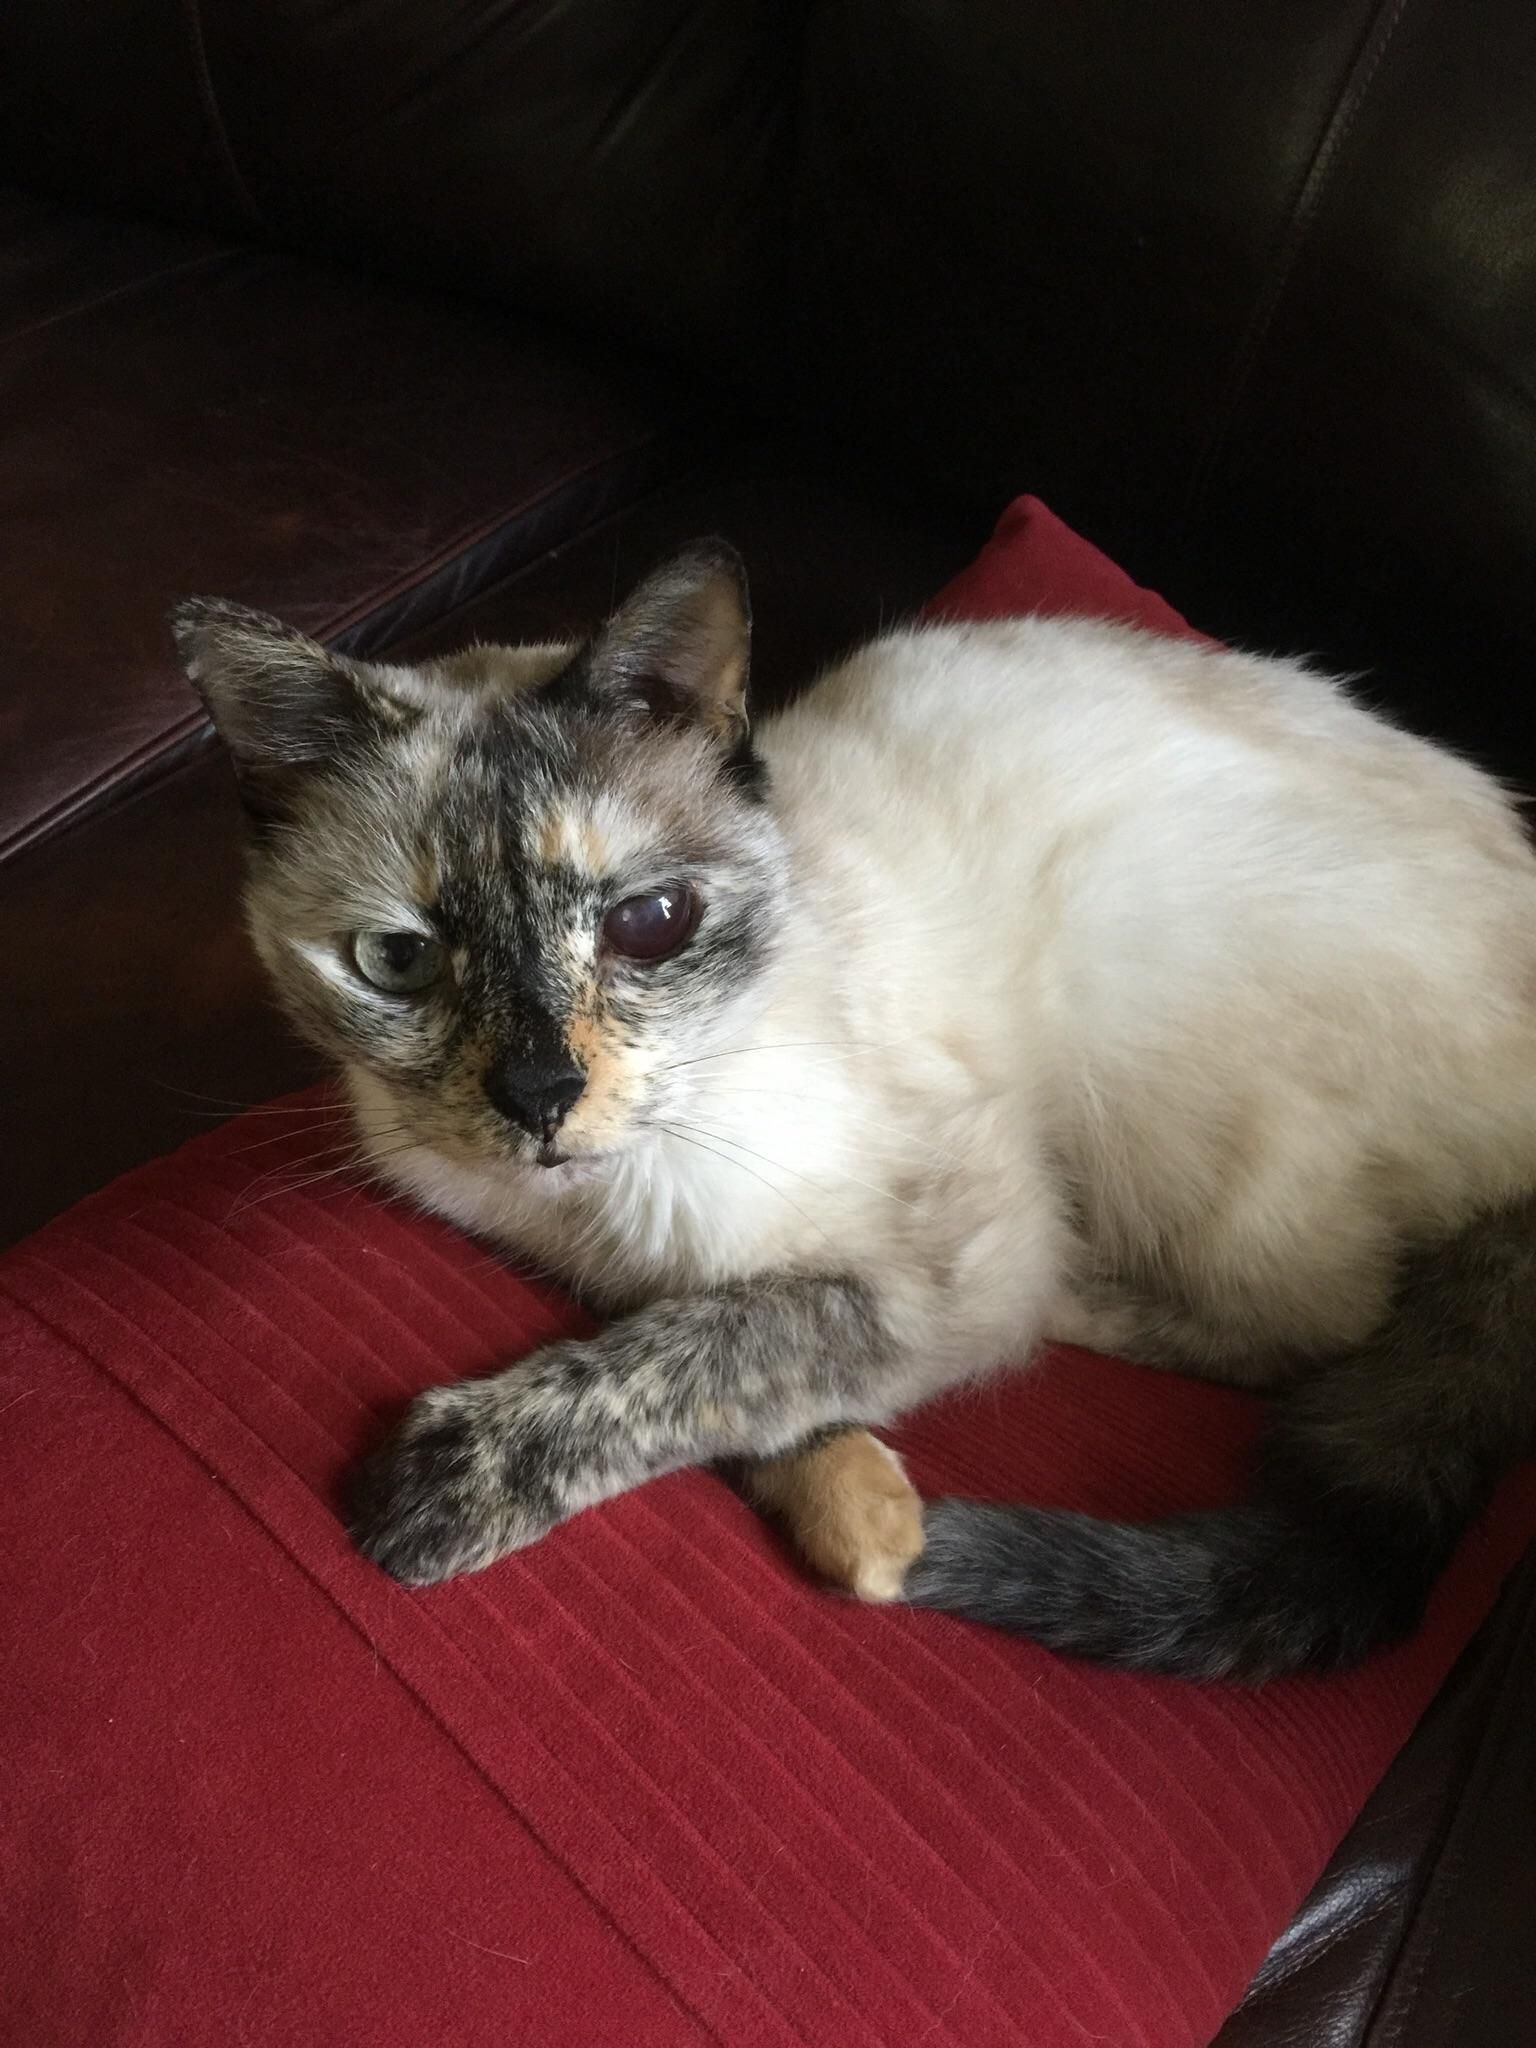 My moms cat Eureka survived getting hit by a car and will be 18 this year. #aww #cute #cutecats #catsofpinterest #cuddle #fluffy #animals #pets #bestfriend #boopthesnoot